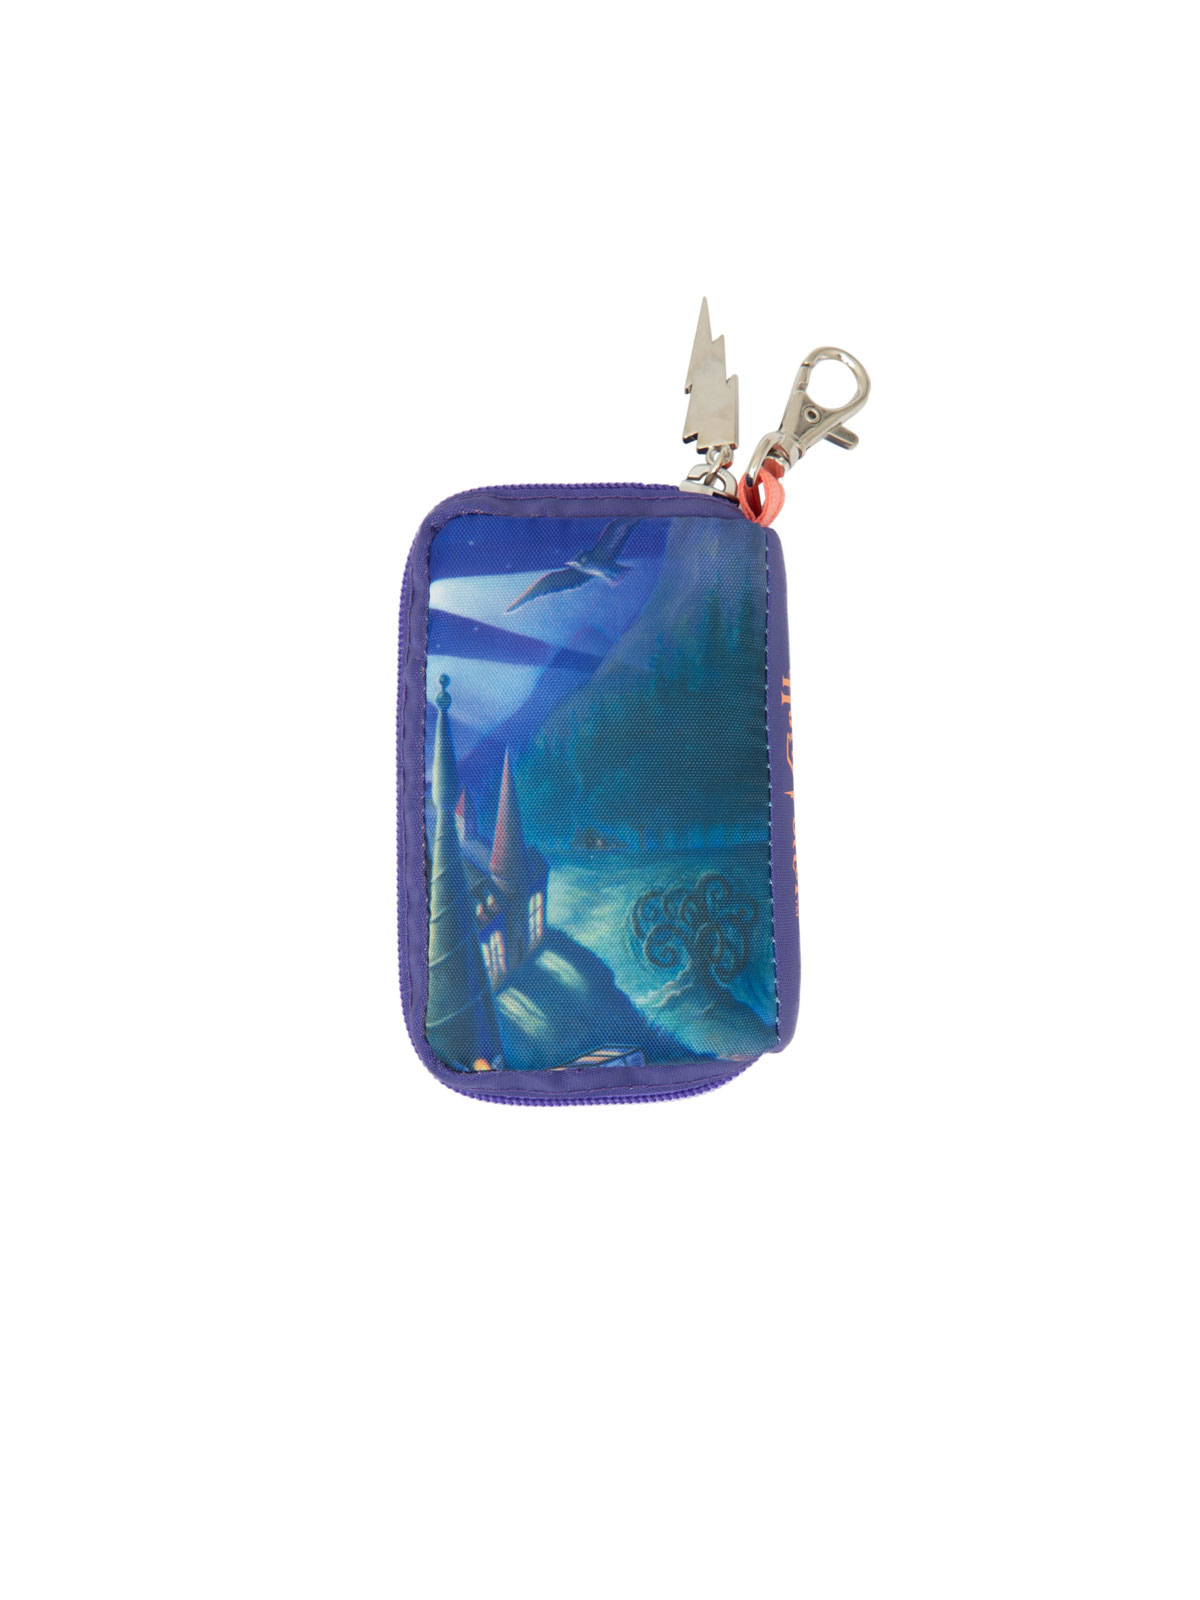 Harry Potter Flying Car Out Of Print Key Pouch & Charm